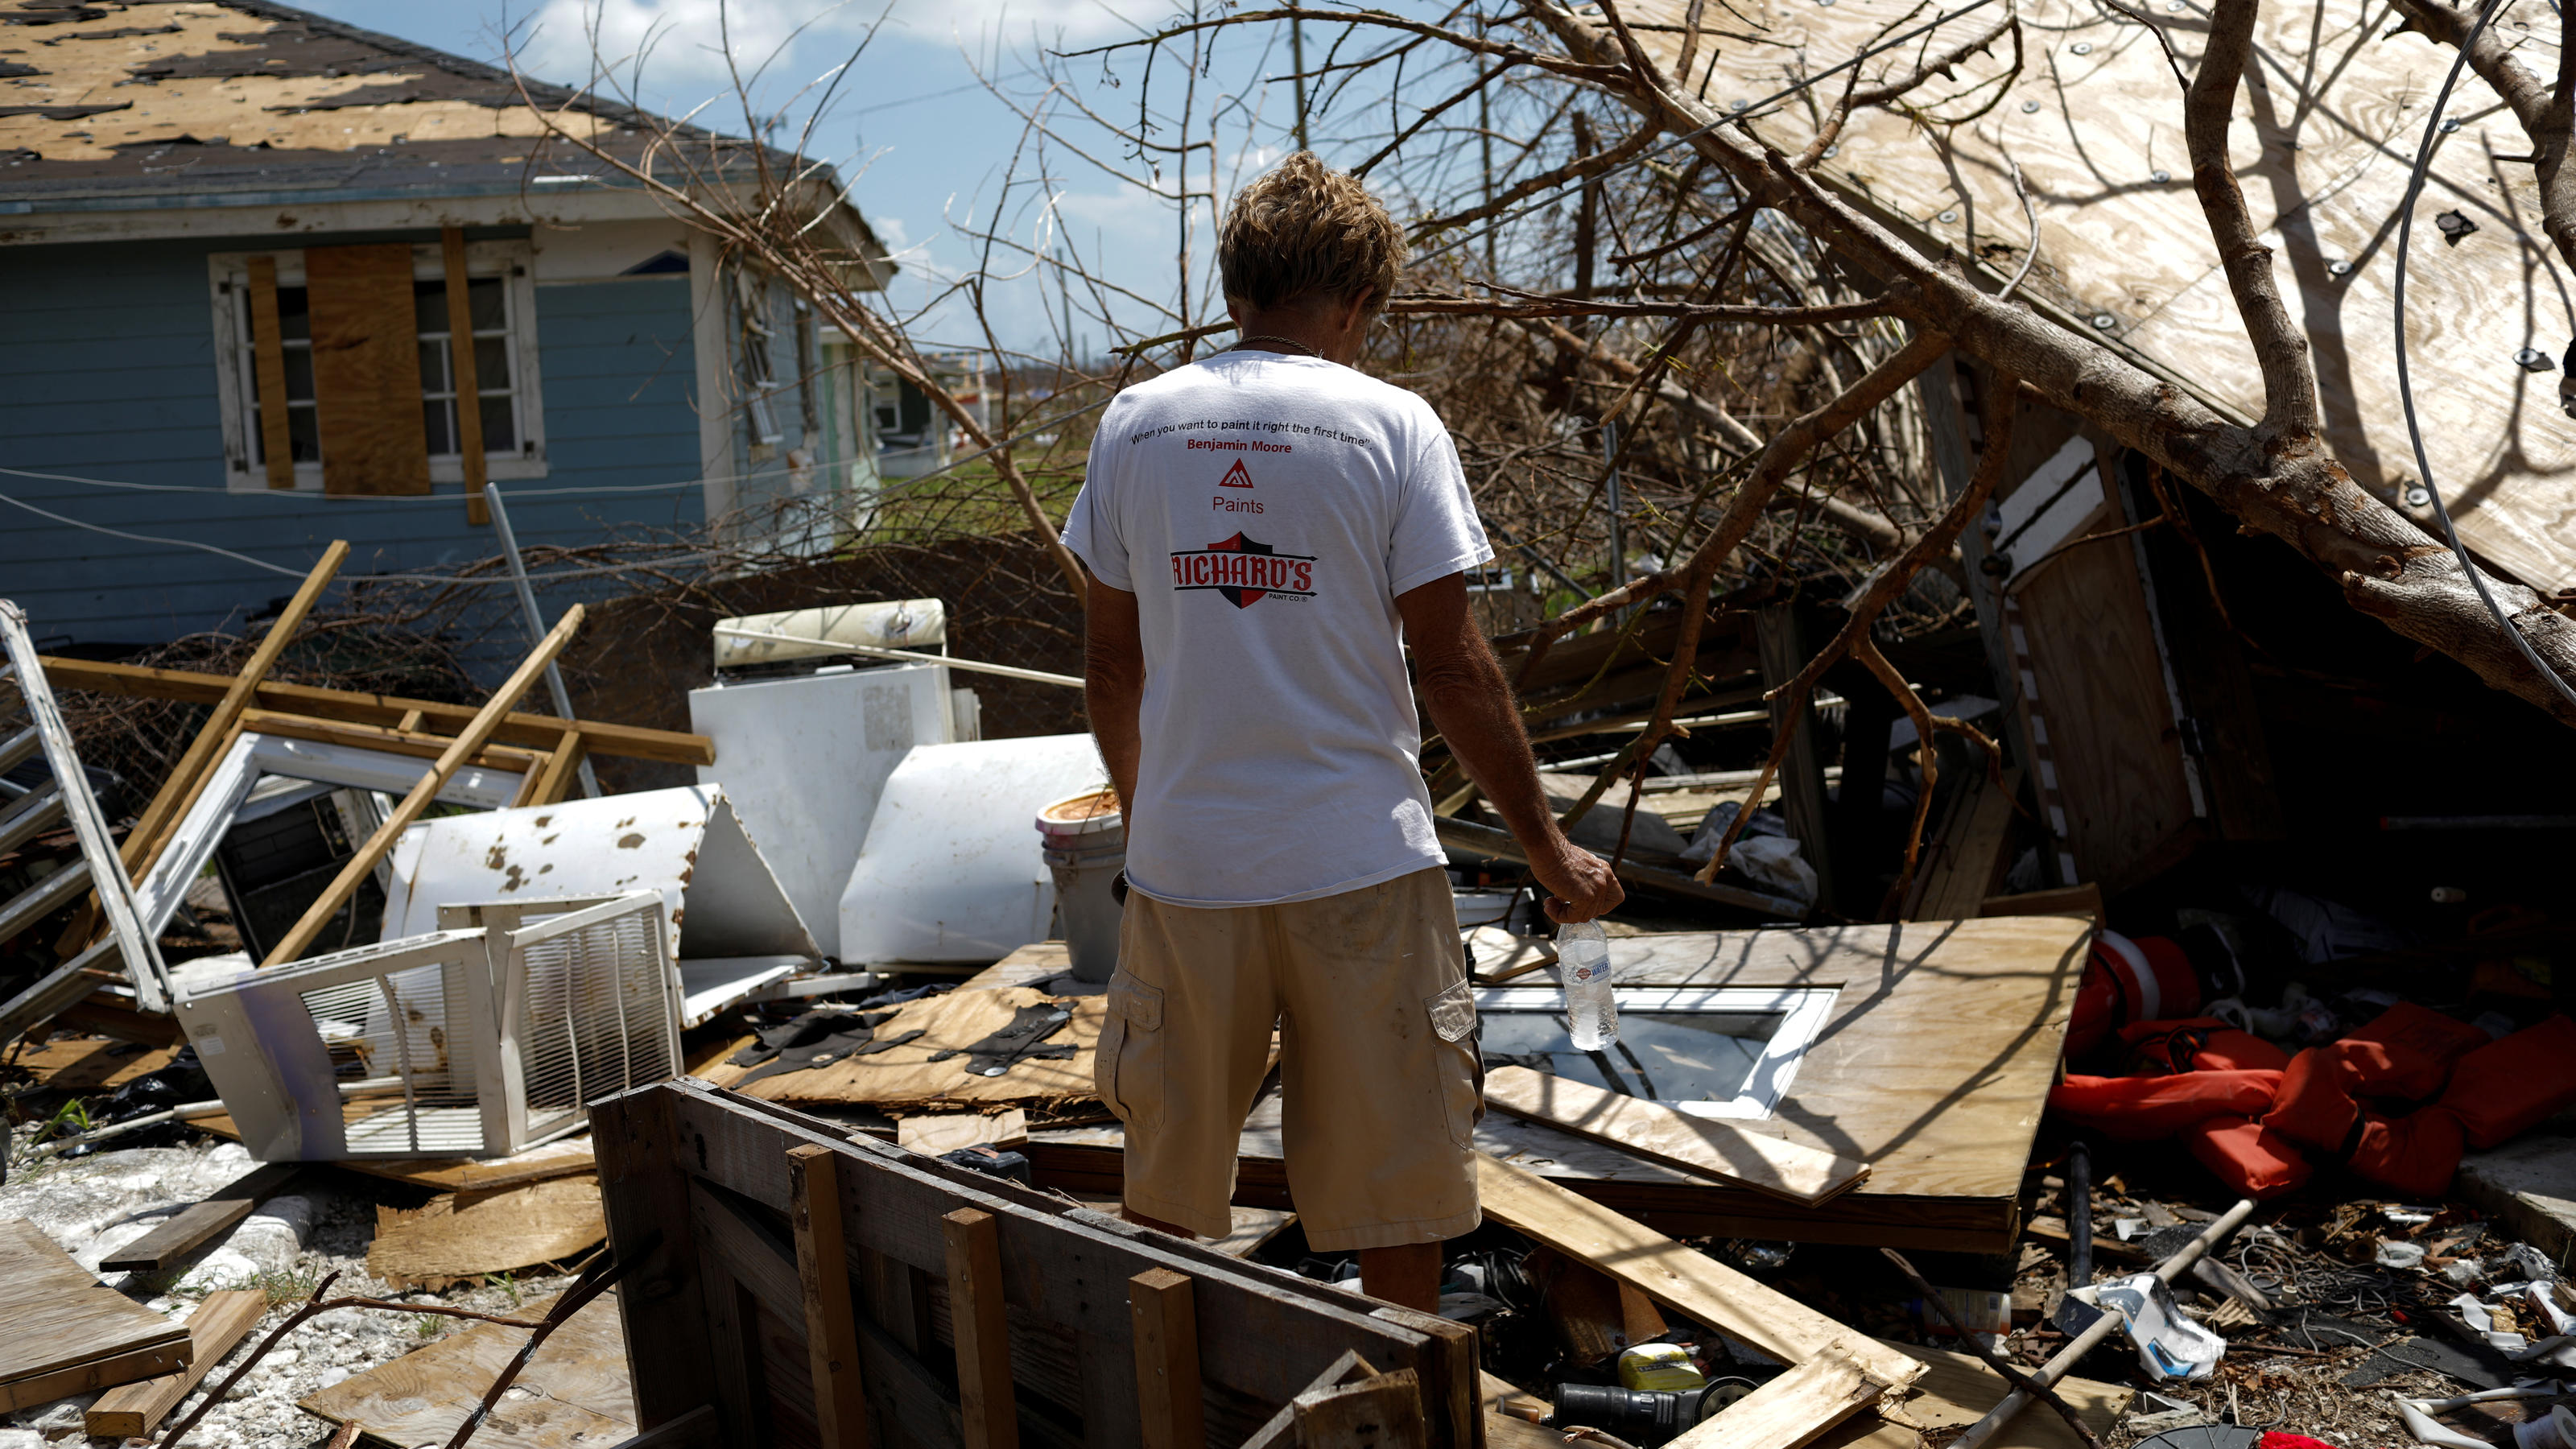 A man looks the devastated cabin at the back yard of his house after Hurricane Dorian hit the Abaco Islands in Spring City, Bahamas, September 11, 2019. REUTERS/Marco Bello